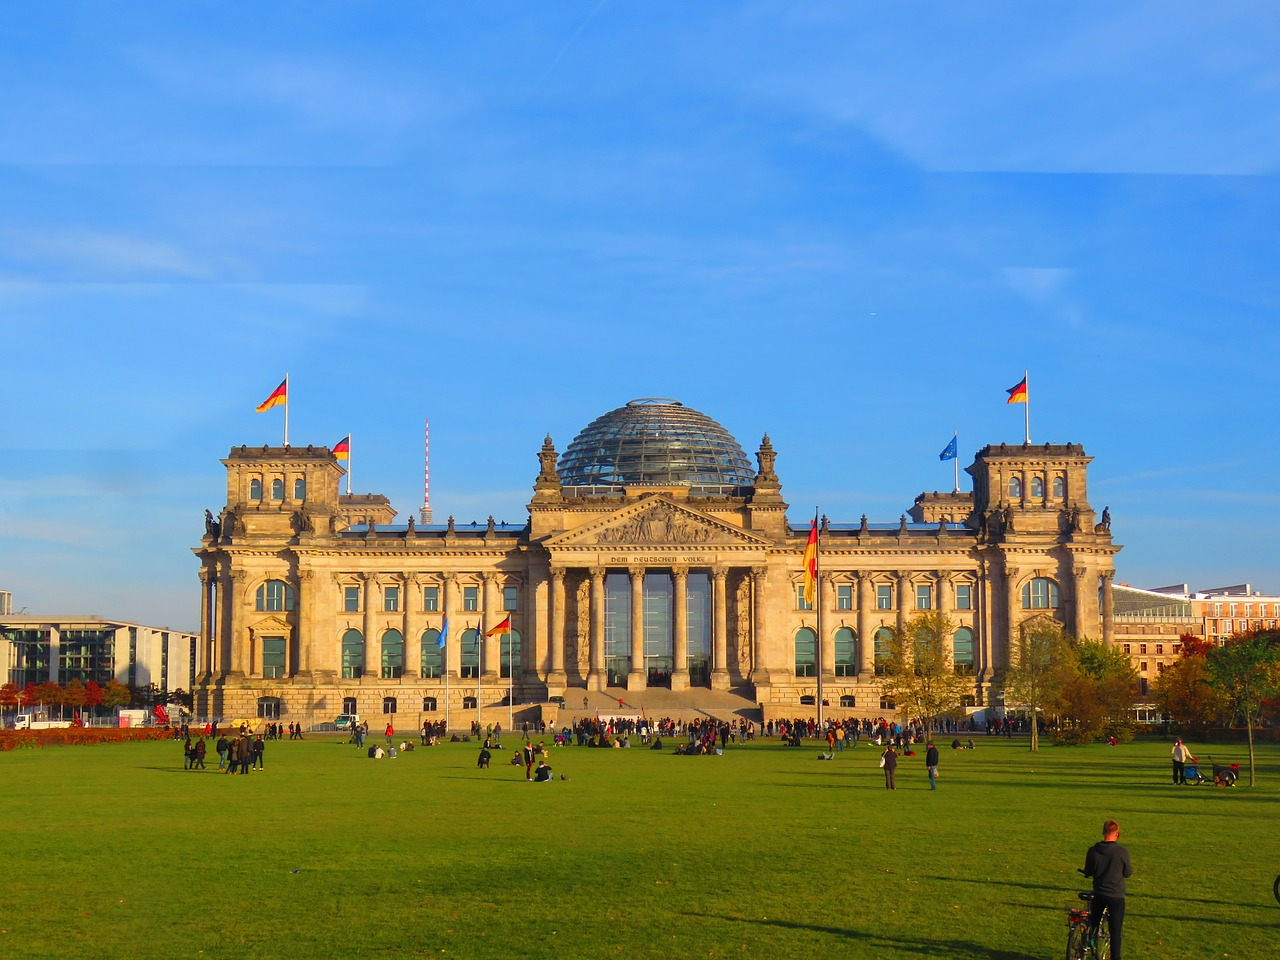 berlin eventide reichstag free photo